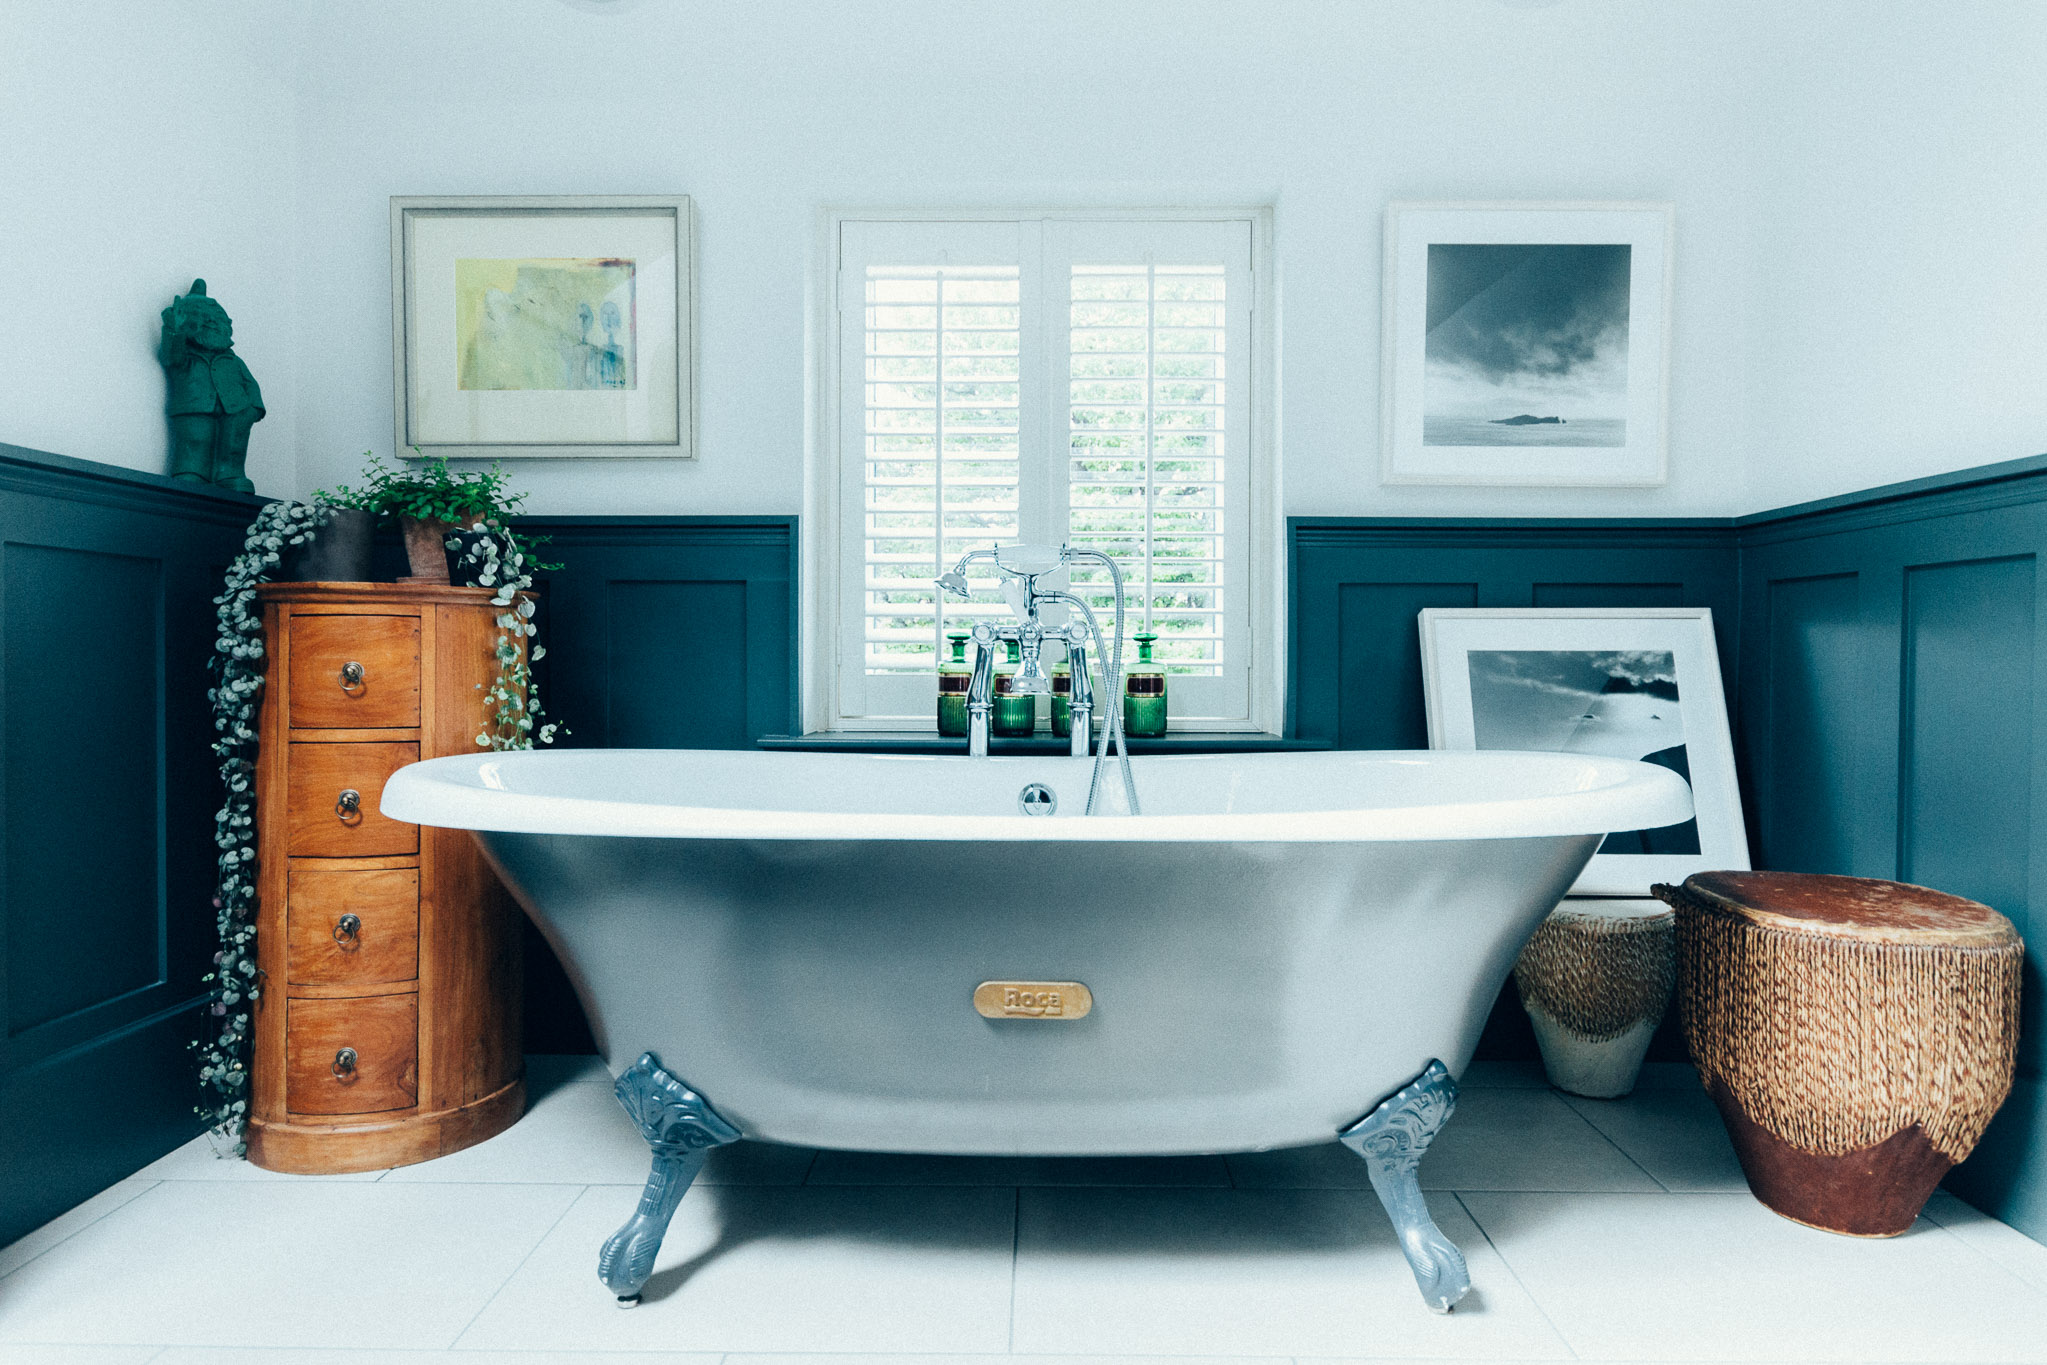 Vintage Bathtub